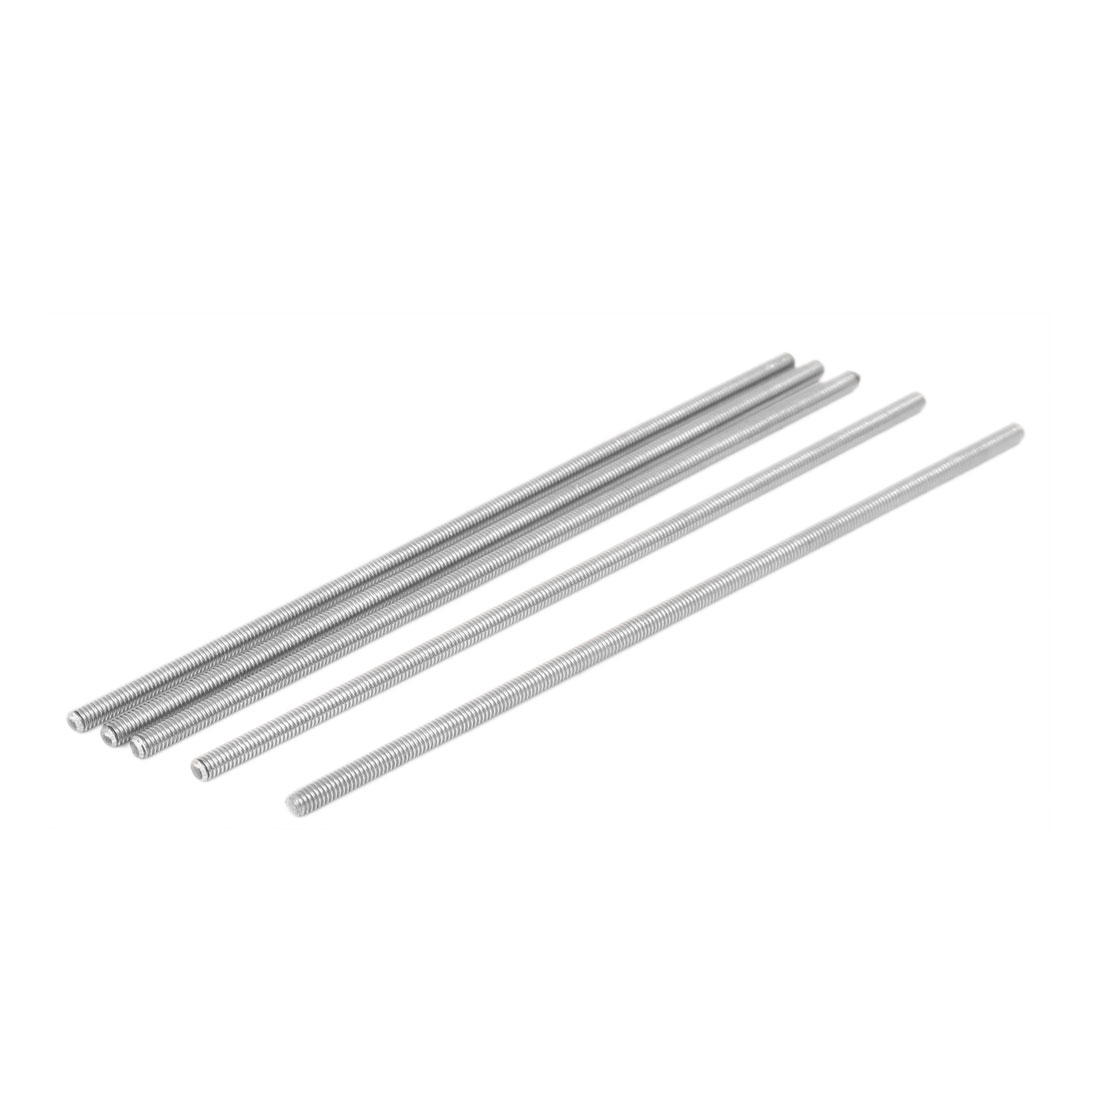 """16  Threaded Rod  Stainless Steel 18-8  304  1 pc 36/"""" Long 3//8/"""""""